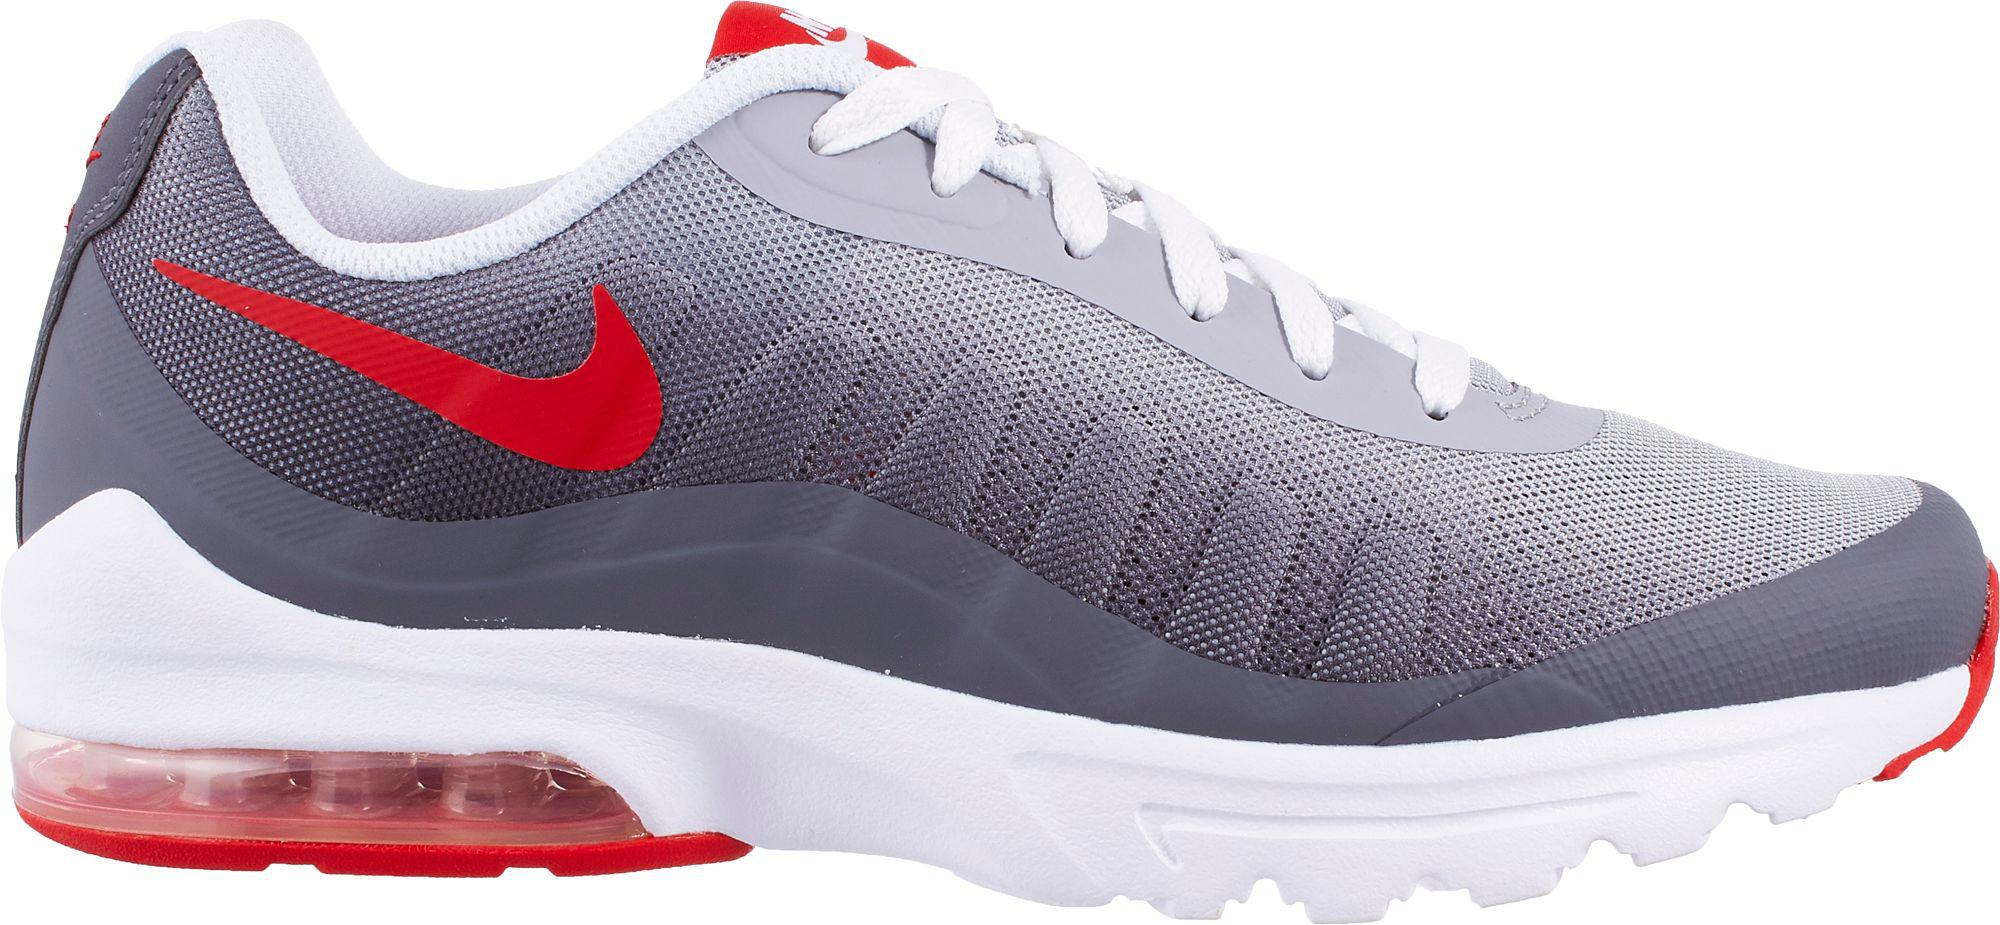 outlet store 608ae 45c97 Gallery. Previously sold at: Dick's Sporting Goods · Men's Nike ...